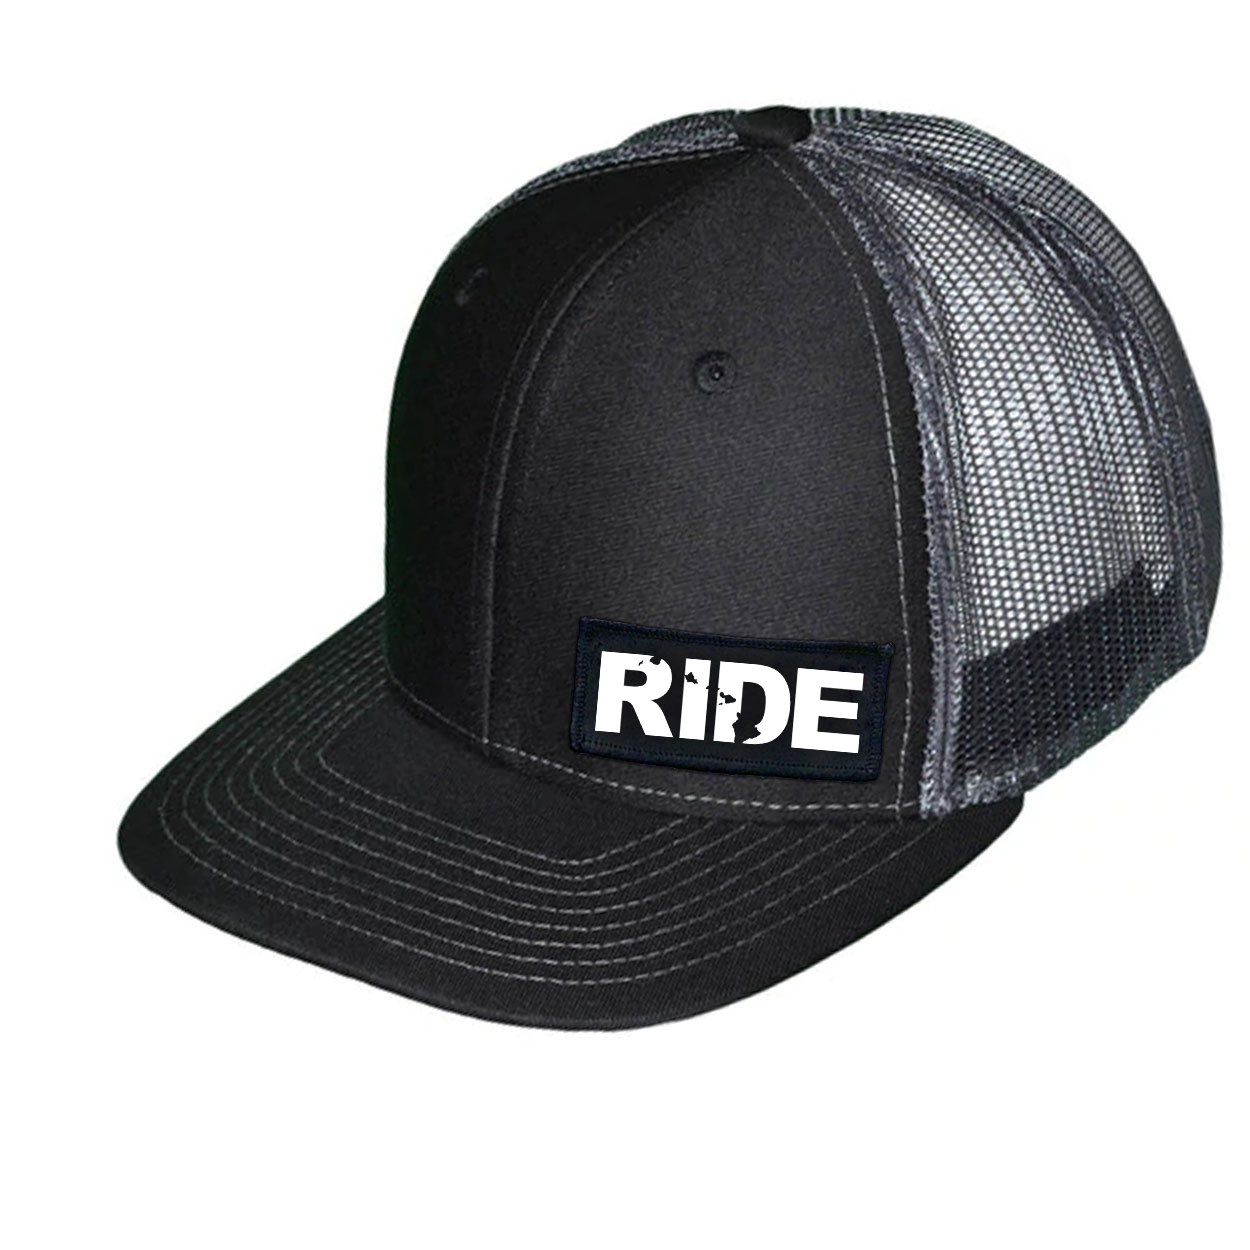 Ride Hawaii Night Out Woven Patch Snapback Trucker Hat Black/Dark Gray (White Logo)